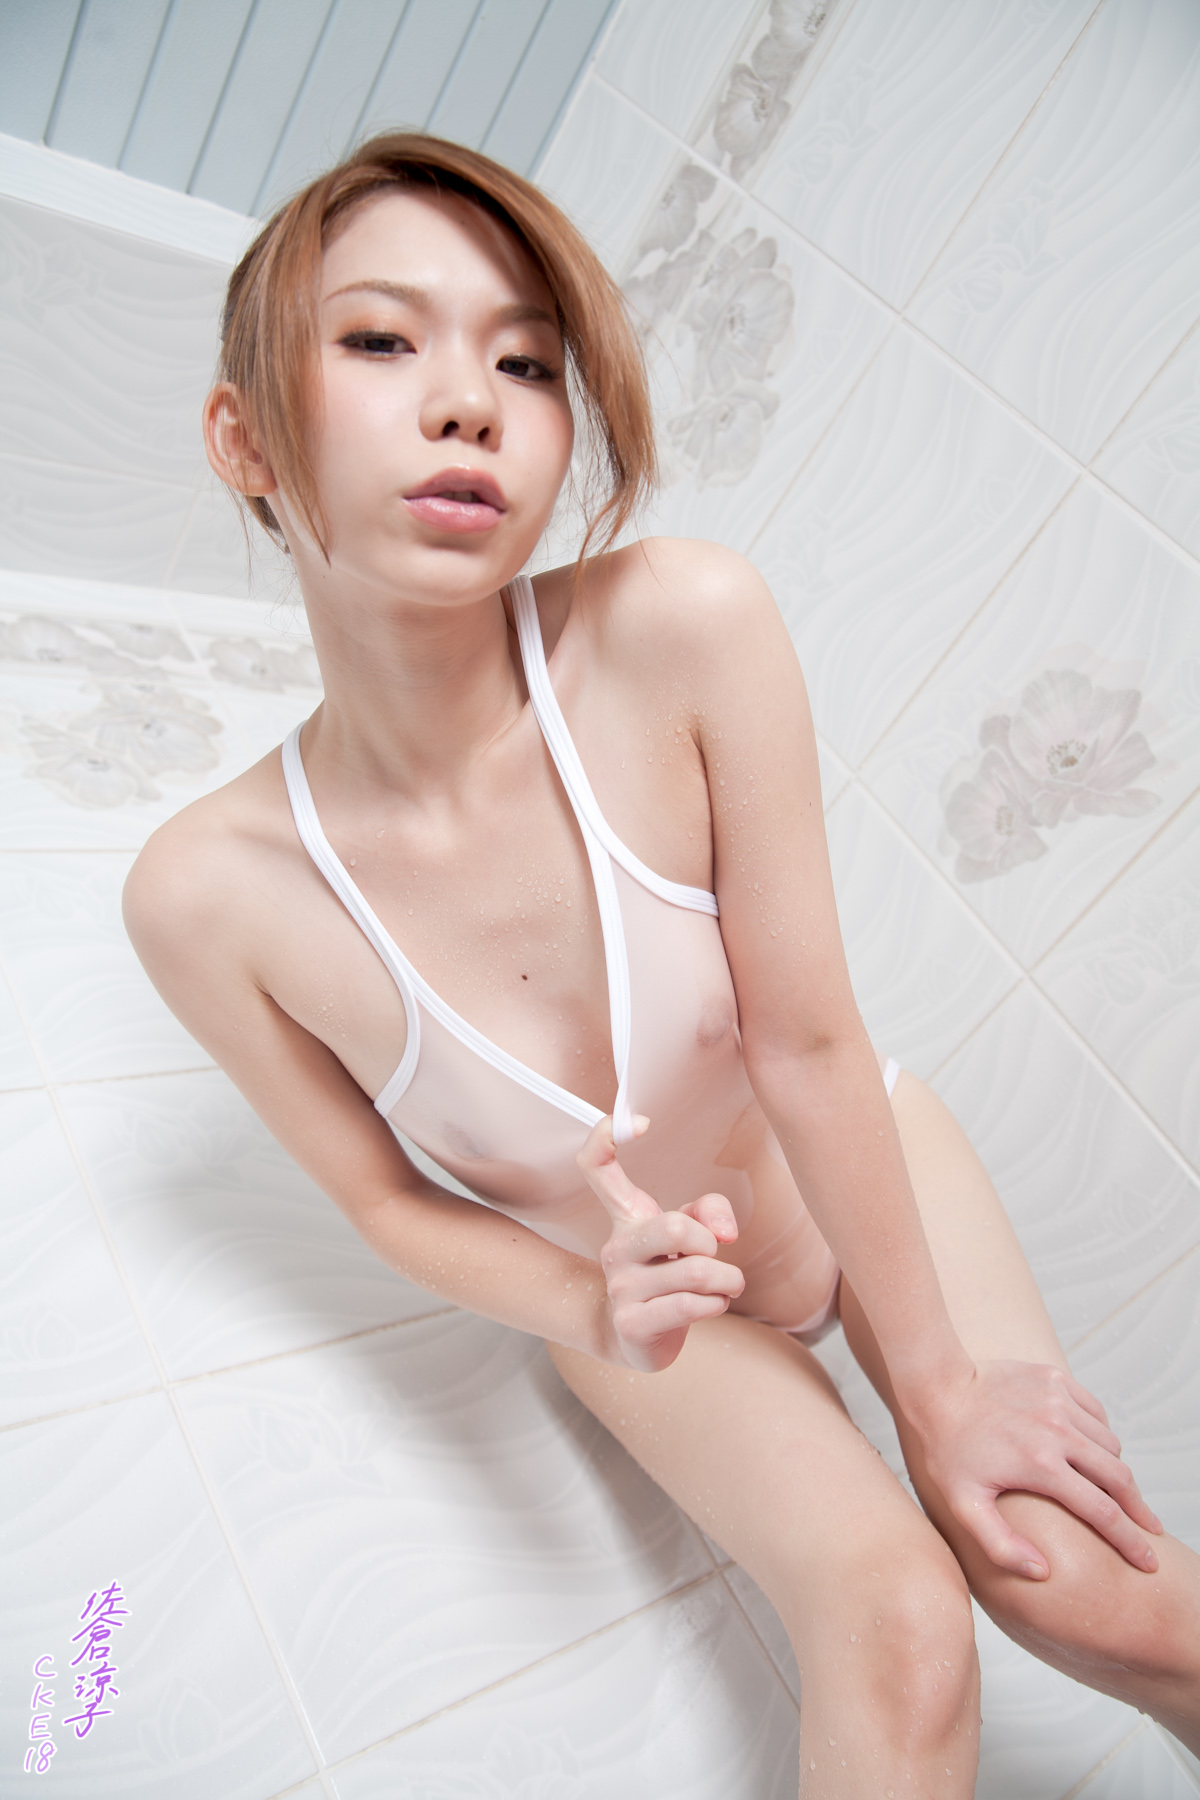 Japan pic search nude